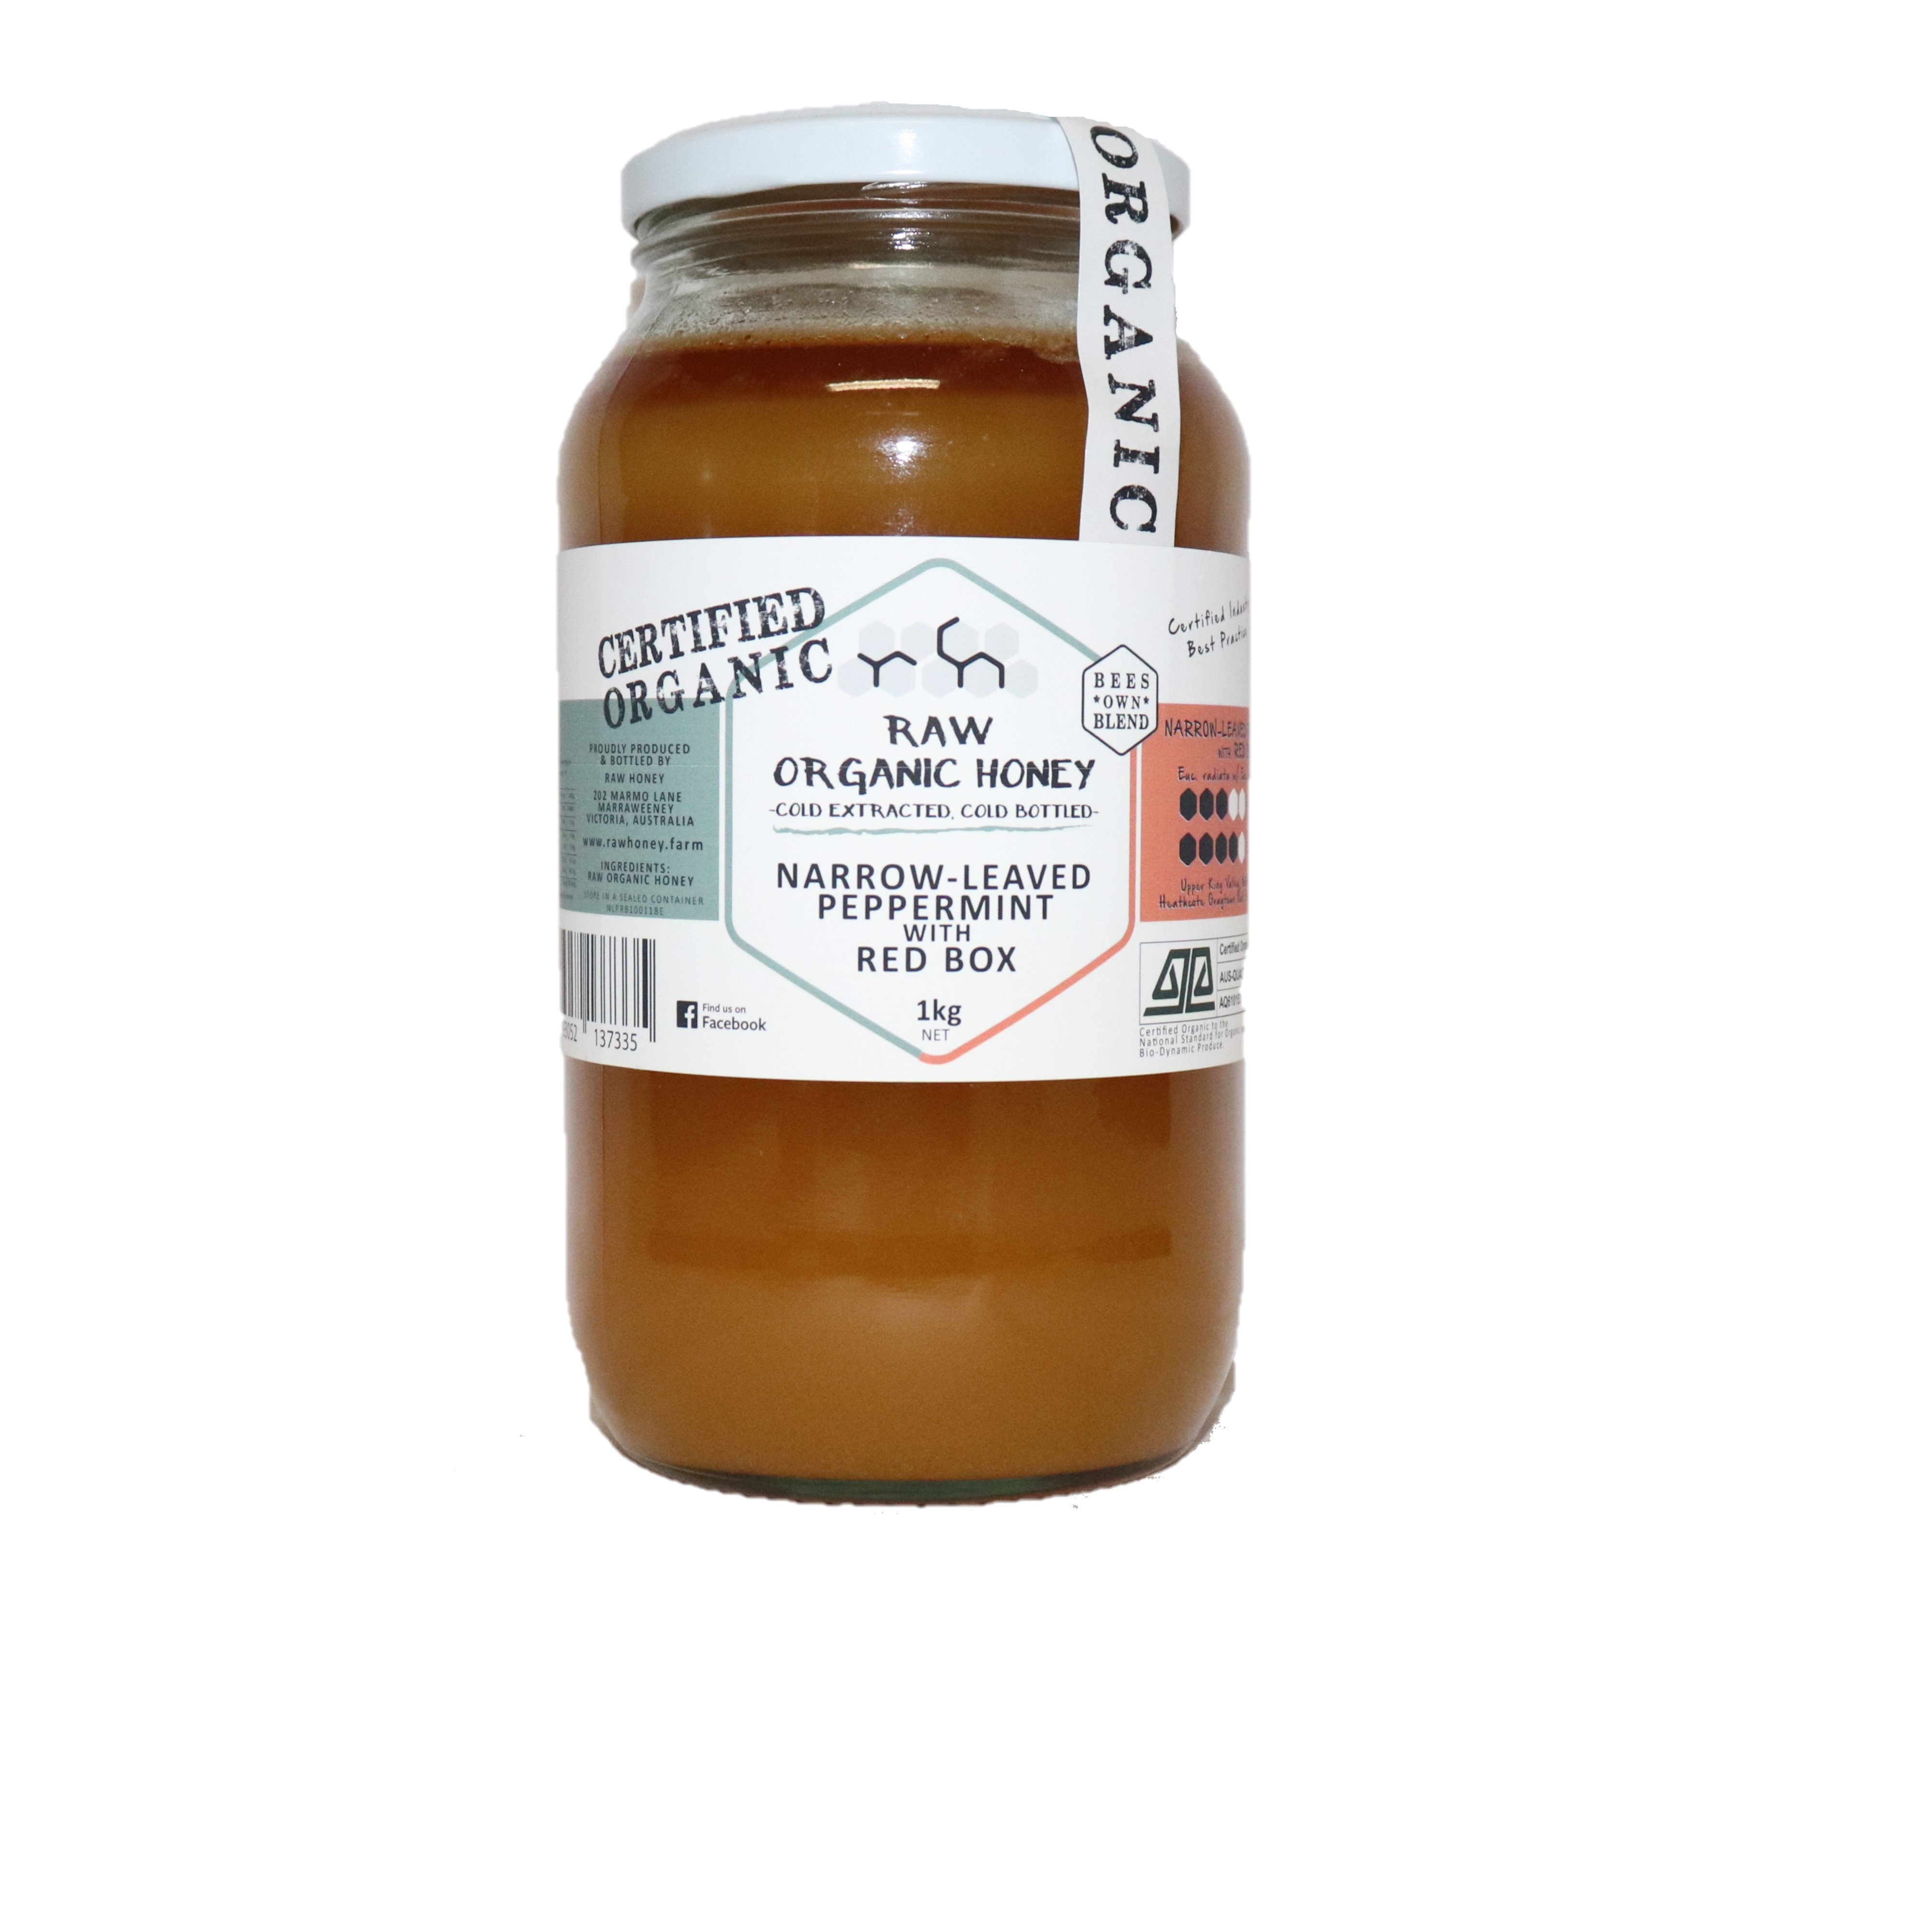 Raw Honey – Narrow-Leaved Peppermint with Red Box 1kg